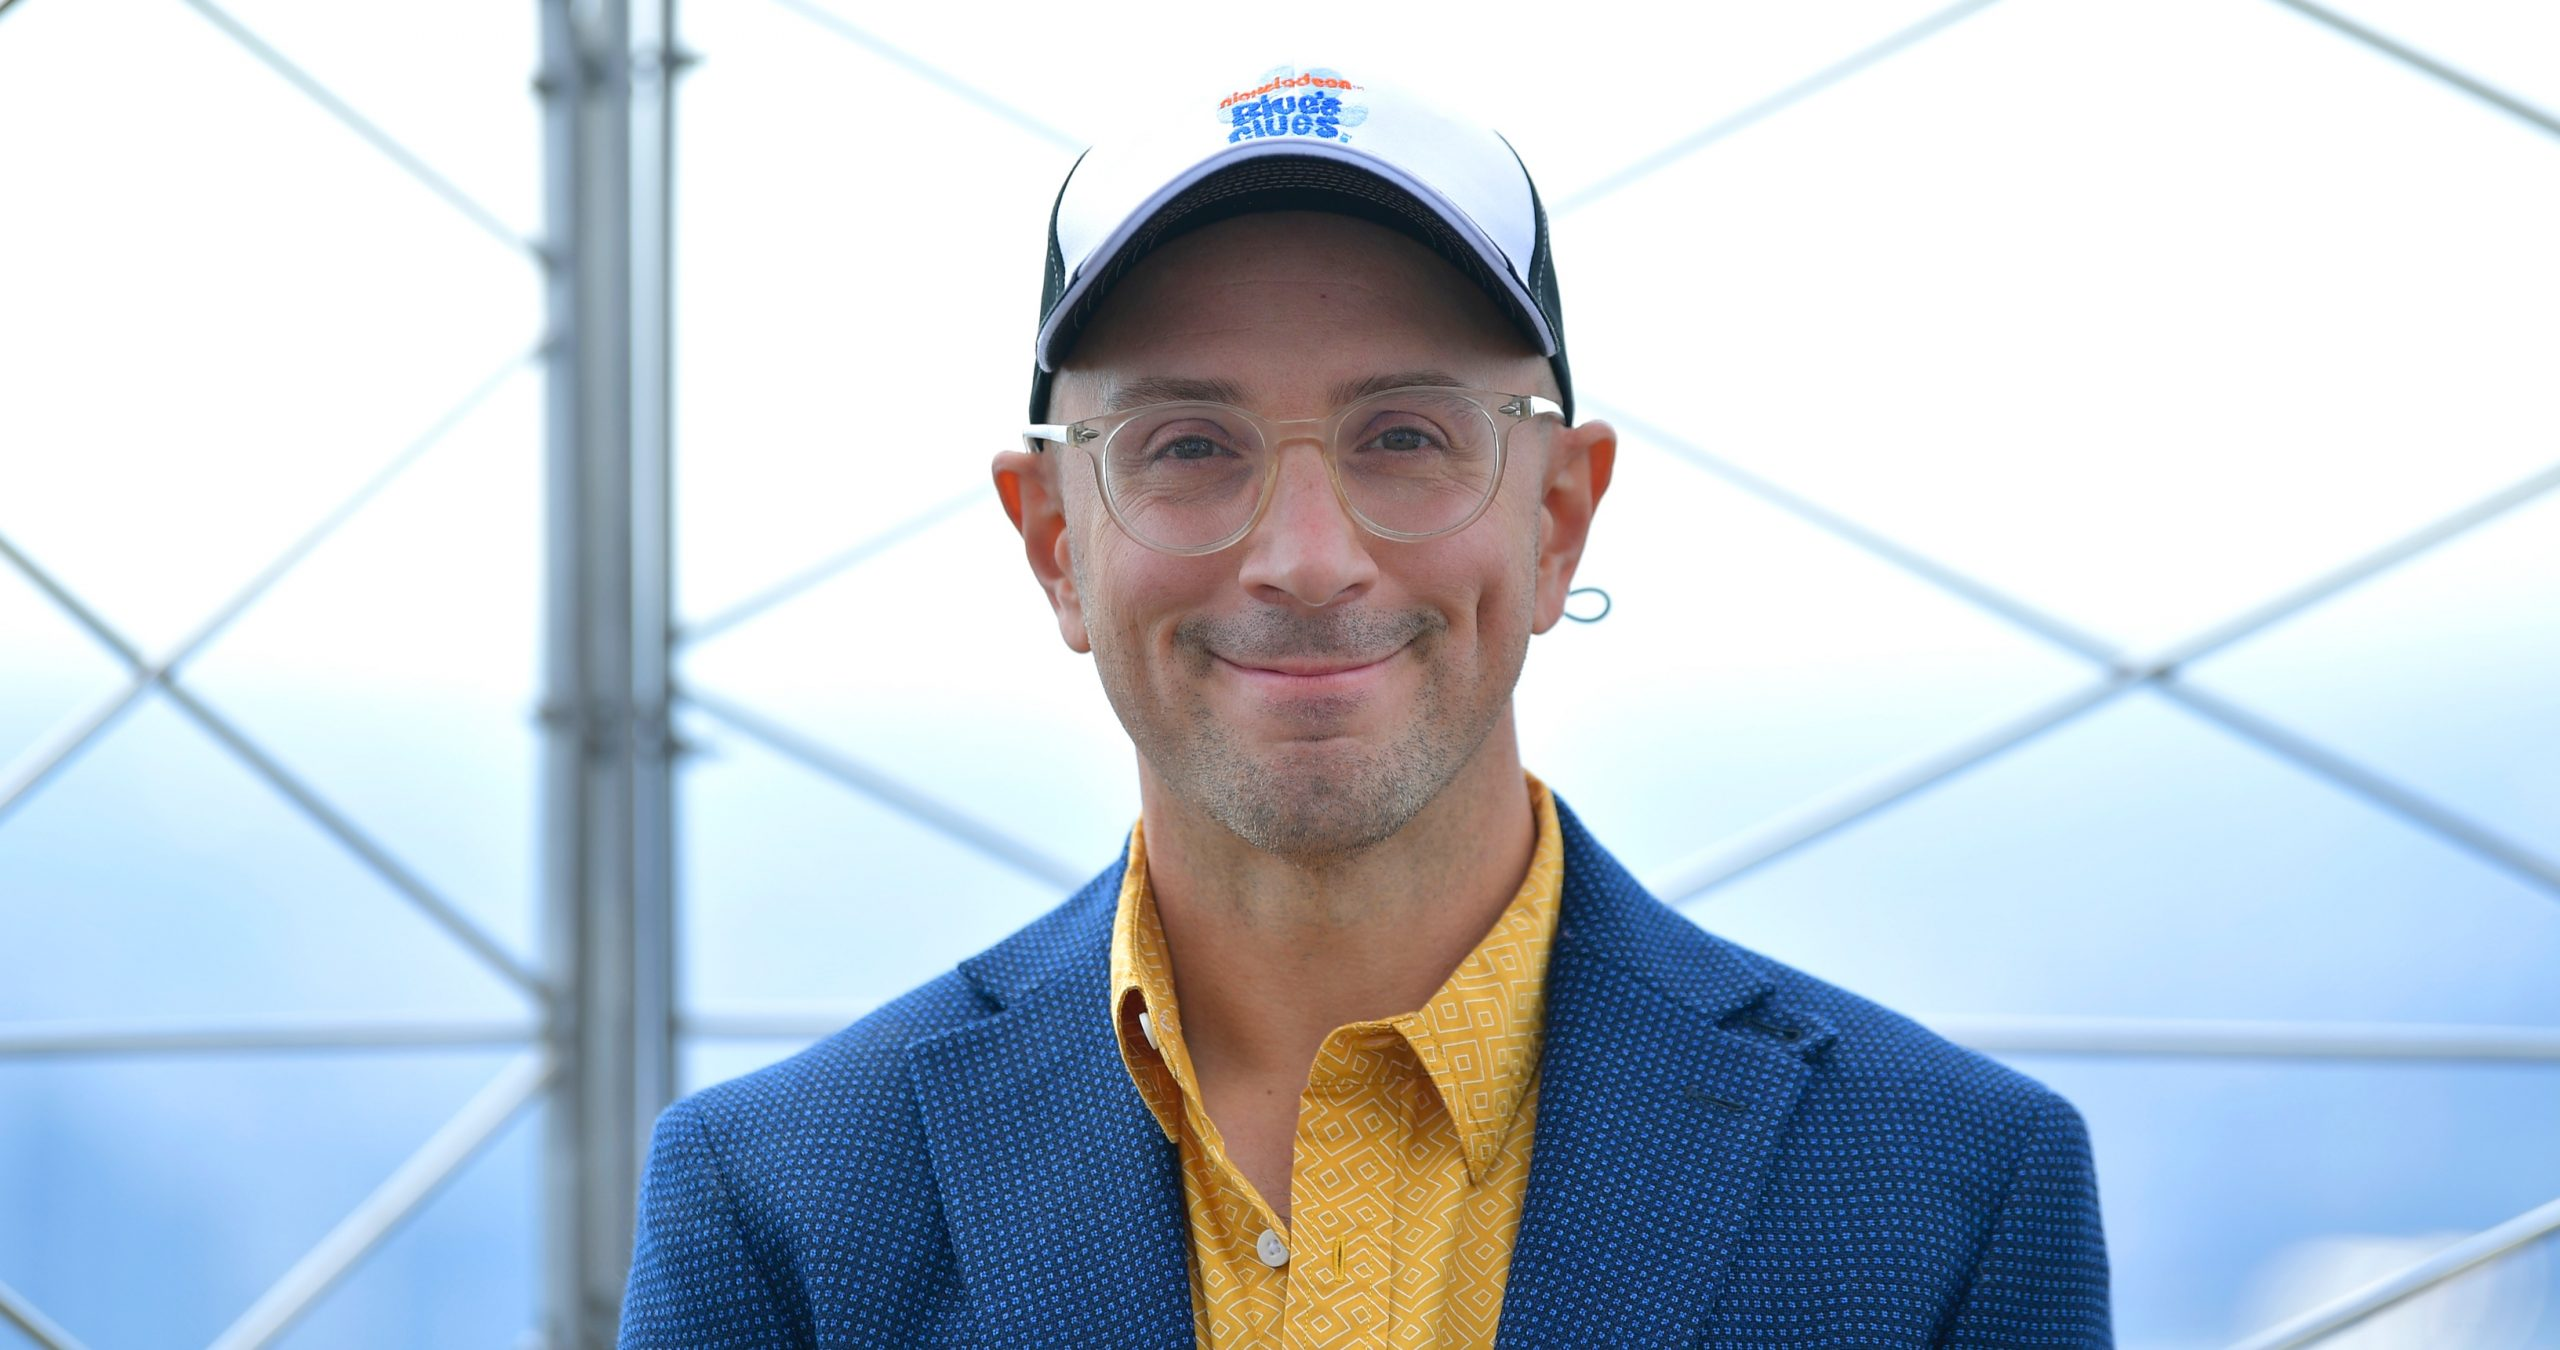 'Blue's Clues' host Steve Burns at 25th Anniversary celebration in a blue suit jacket and yellow button up.